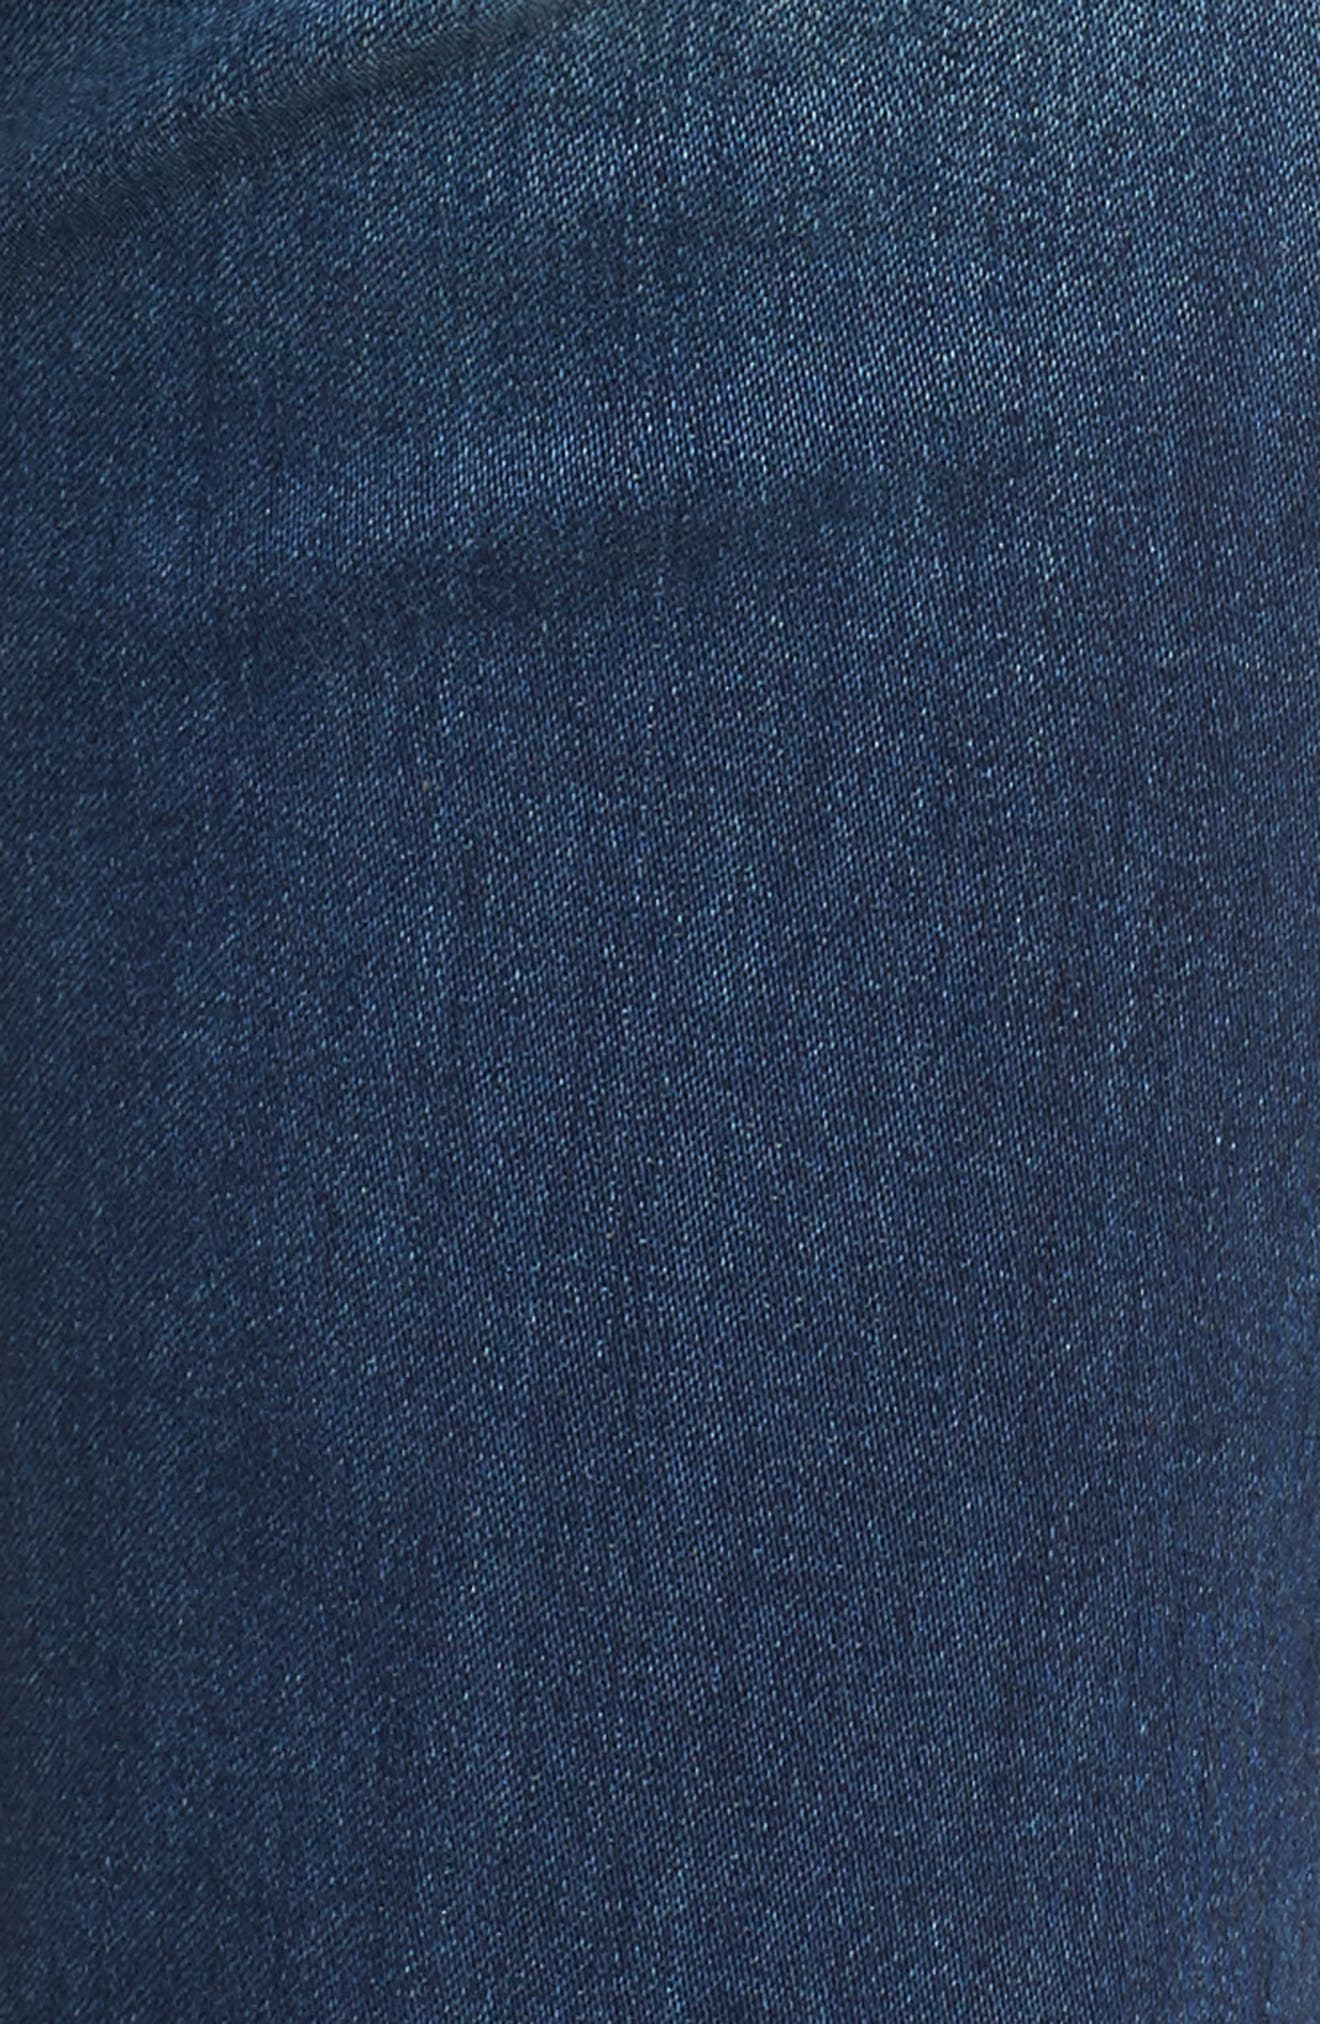 Marilyn Stretch Straight Leg Jeans,                             Alternate thumbnail 5, color,